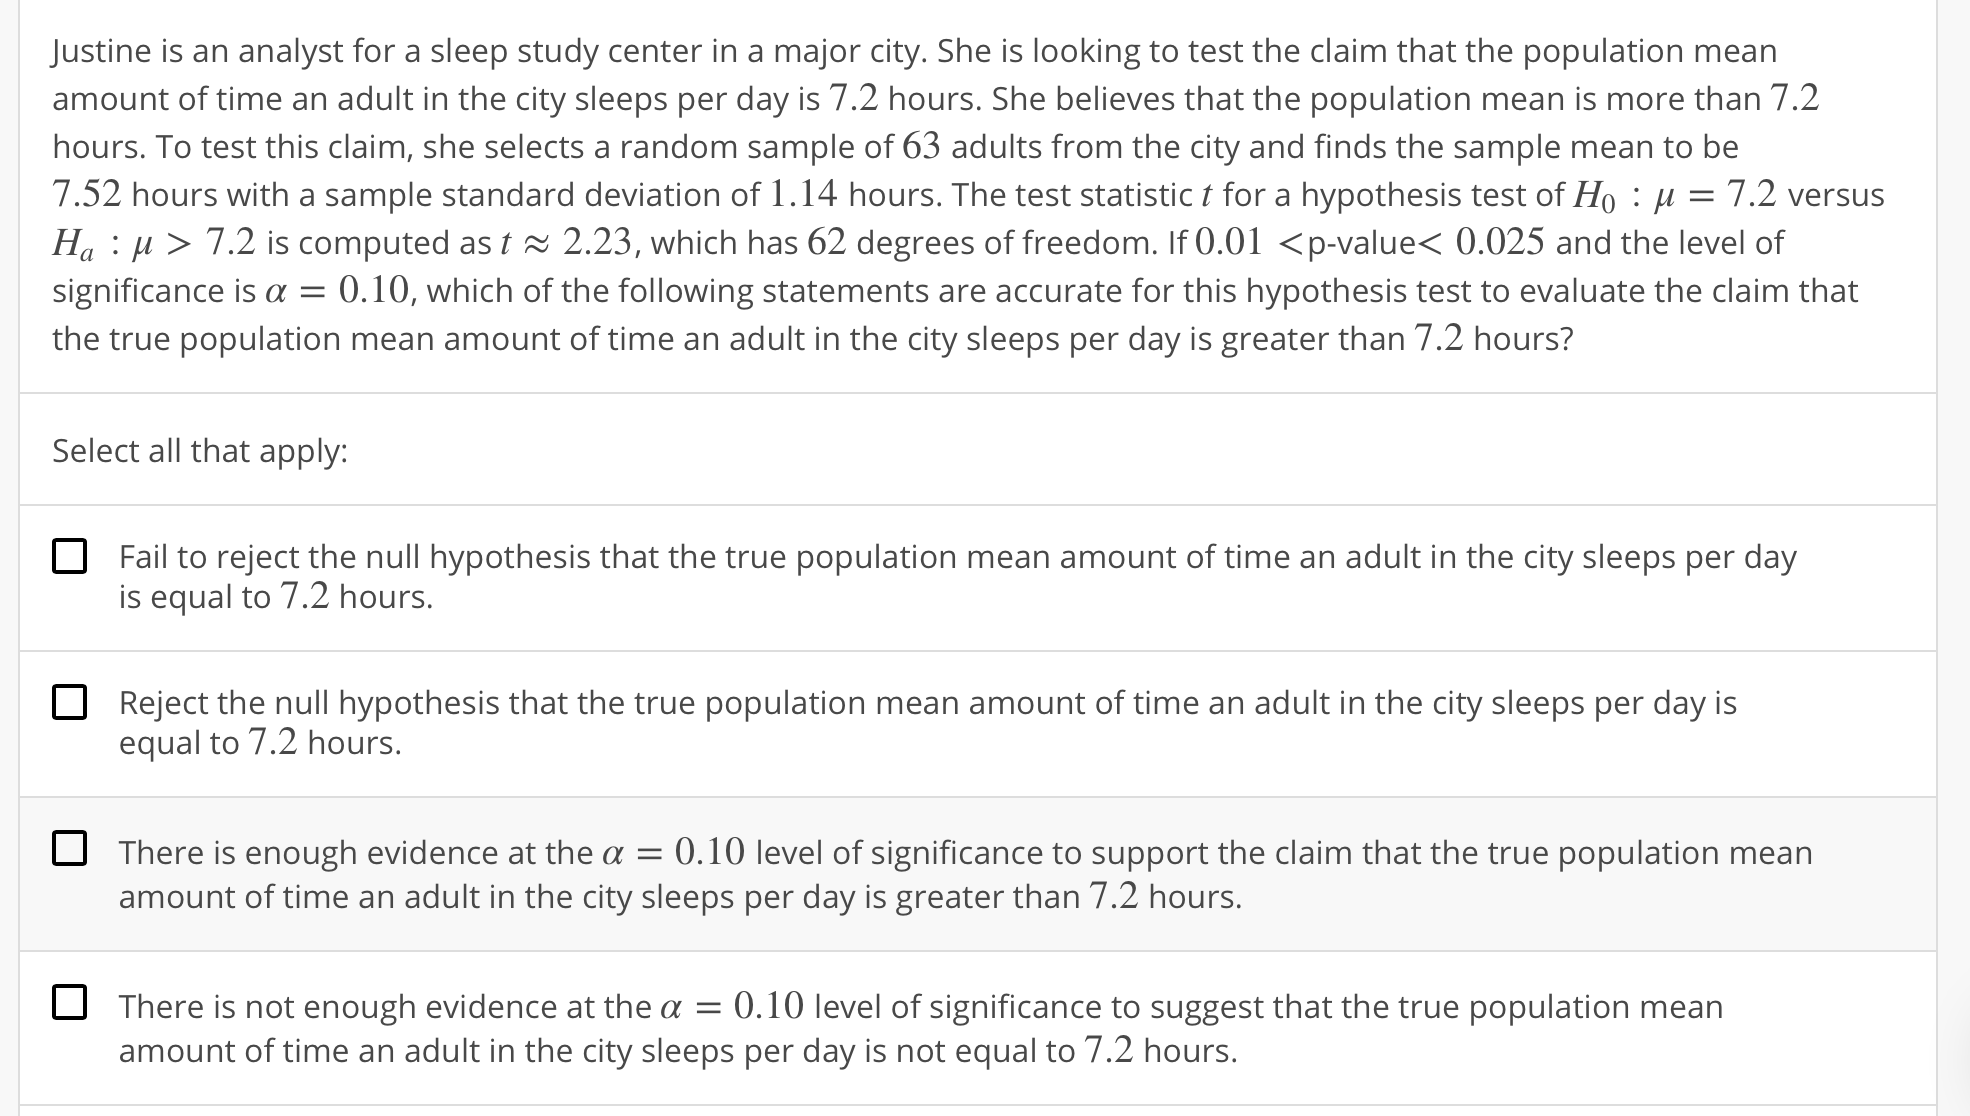 Justine is an analyst for a sleep study center in a major city. She is looking to test the claim that the population mean amount of time an adult in the city sleeps per day is 7.2 hours. She believes that the population mean is more than 7.2 hours. To test this claim, she selects a random sample of 63 adults from the city and finds the sample mean to be 7.52 hours with a sample standard deviation of 1 . 14 hours. The test statistic t for a hypothesis test of Ho : μ = 7.2 versus Ha : μ 〉 7.2 is computed as t 2.23, which has 62 degrees of freedom. If 0.01 〈p-value< 0.025 and the level of significance is α = 0.10, which of the following statements are accurate for this hypothesis test to evaluate the claim that the true population mean amount of time an adult in the city sleeps per day is greater than 7.2 hours? Select all that apply: Fail to reject the null hypothesis that the true population mean amount of time an adult in the city sleeps per day is equal to 7.2 hours. Reject the null hypothesis that the true population mean amount of time an adult in the city sleeps per day is equal to 7.2 hours. O There is enough evidence at the α-0. 10 level of significance to support the claim that the true population mean amount of time an adult in the city sleeps per day is greater than 7.2 hours. There is not enough evidence at the a 0.10 level of significance to suggest that the true population mean amount of time an adult in the city sleeps per day is not equal to 7.2 hours.